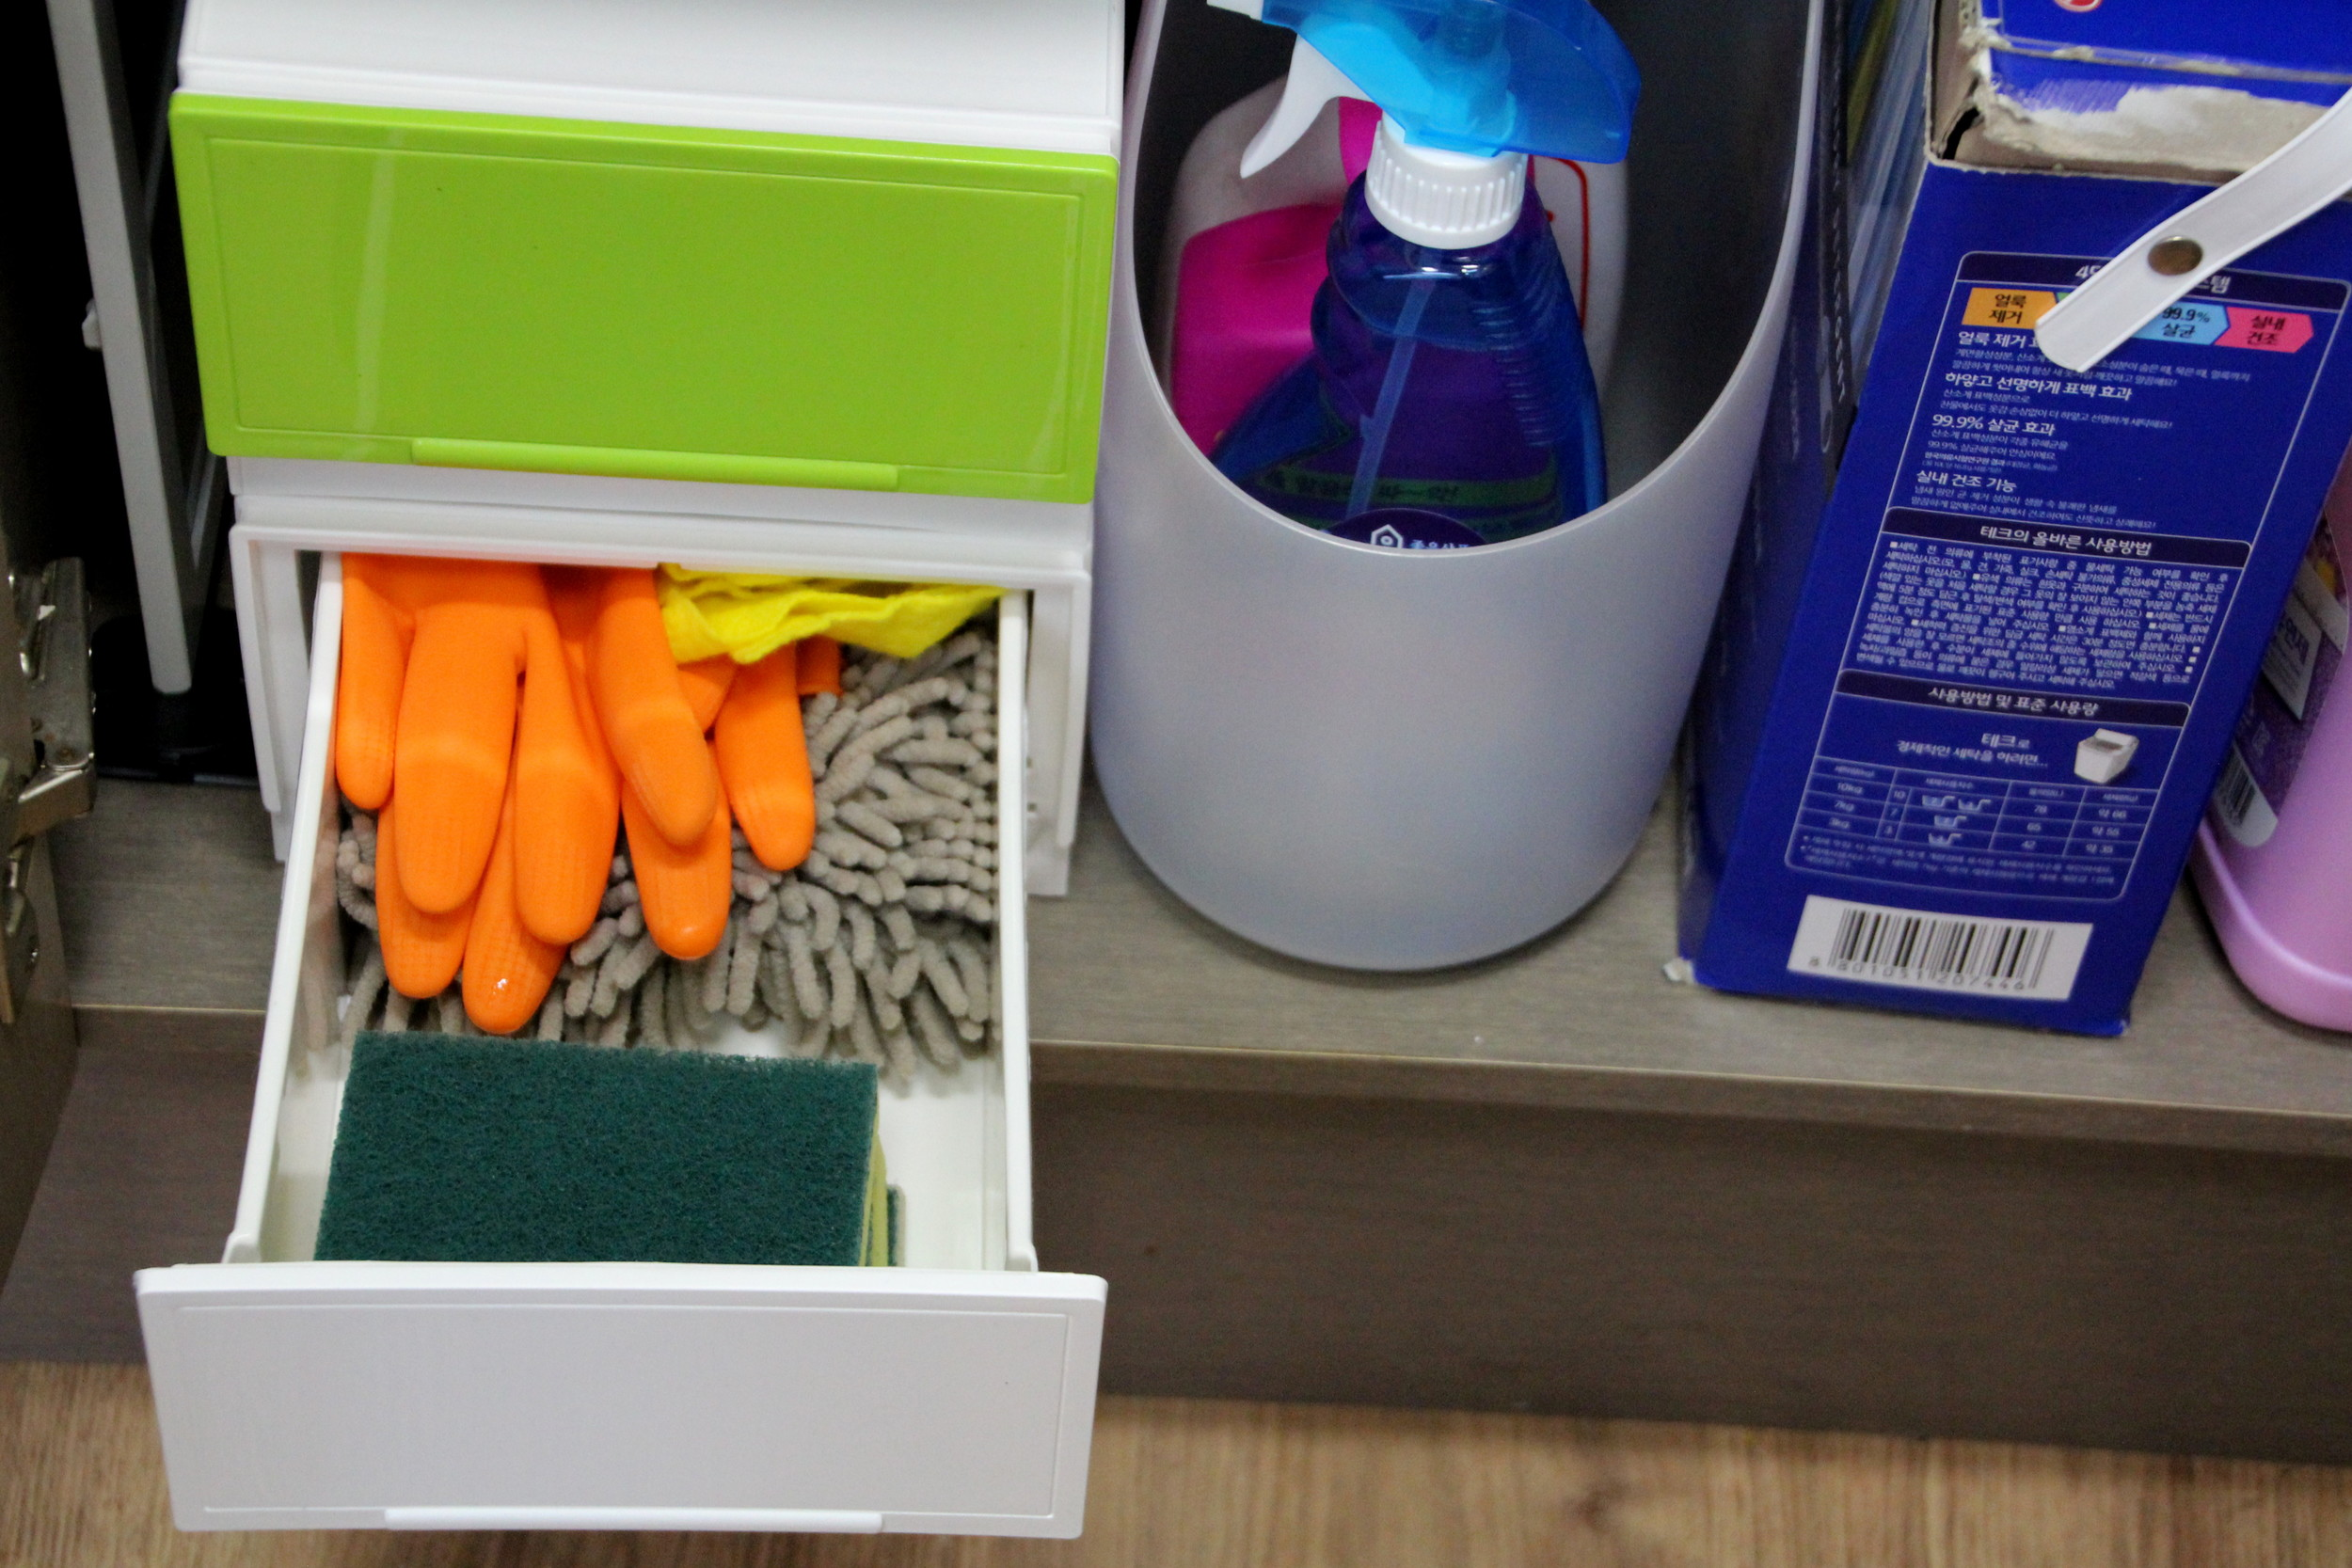 5 Minute Fix: Organizing Underneath the Sink